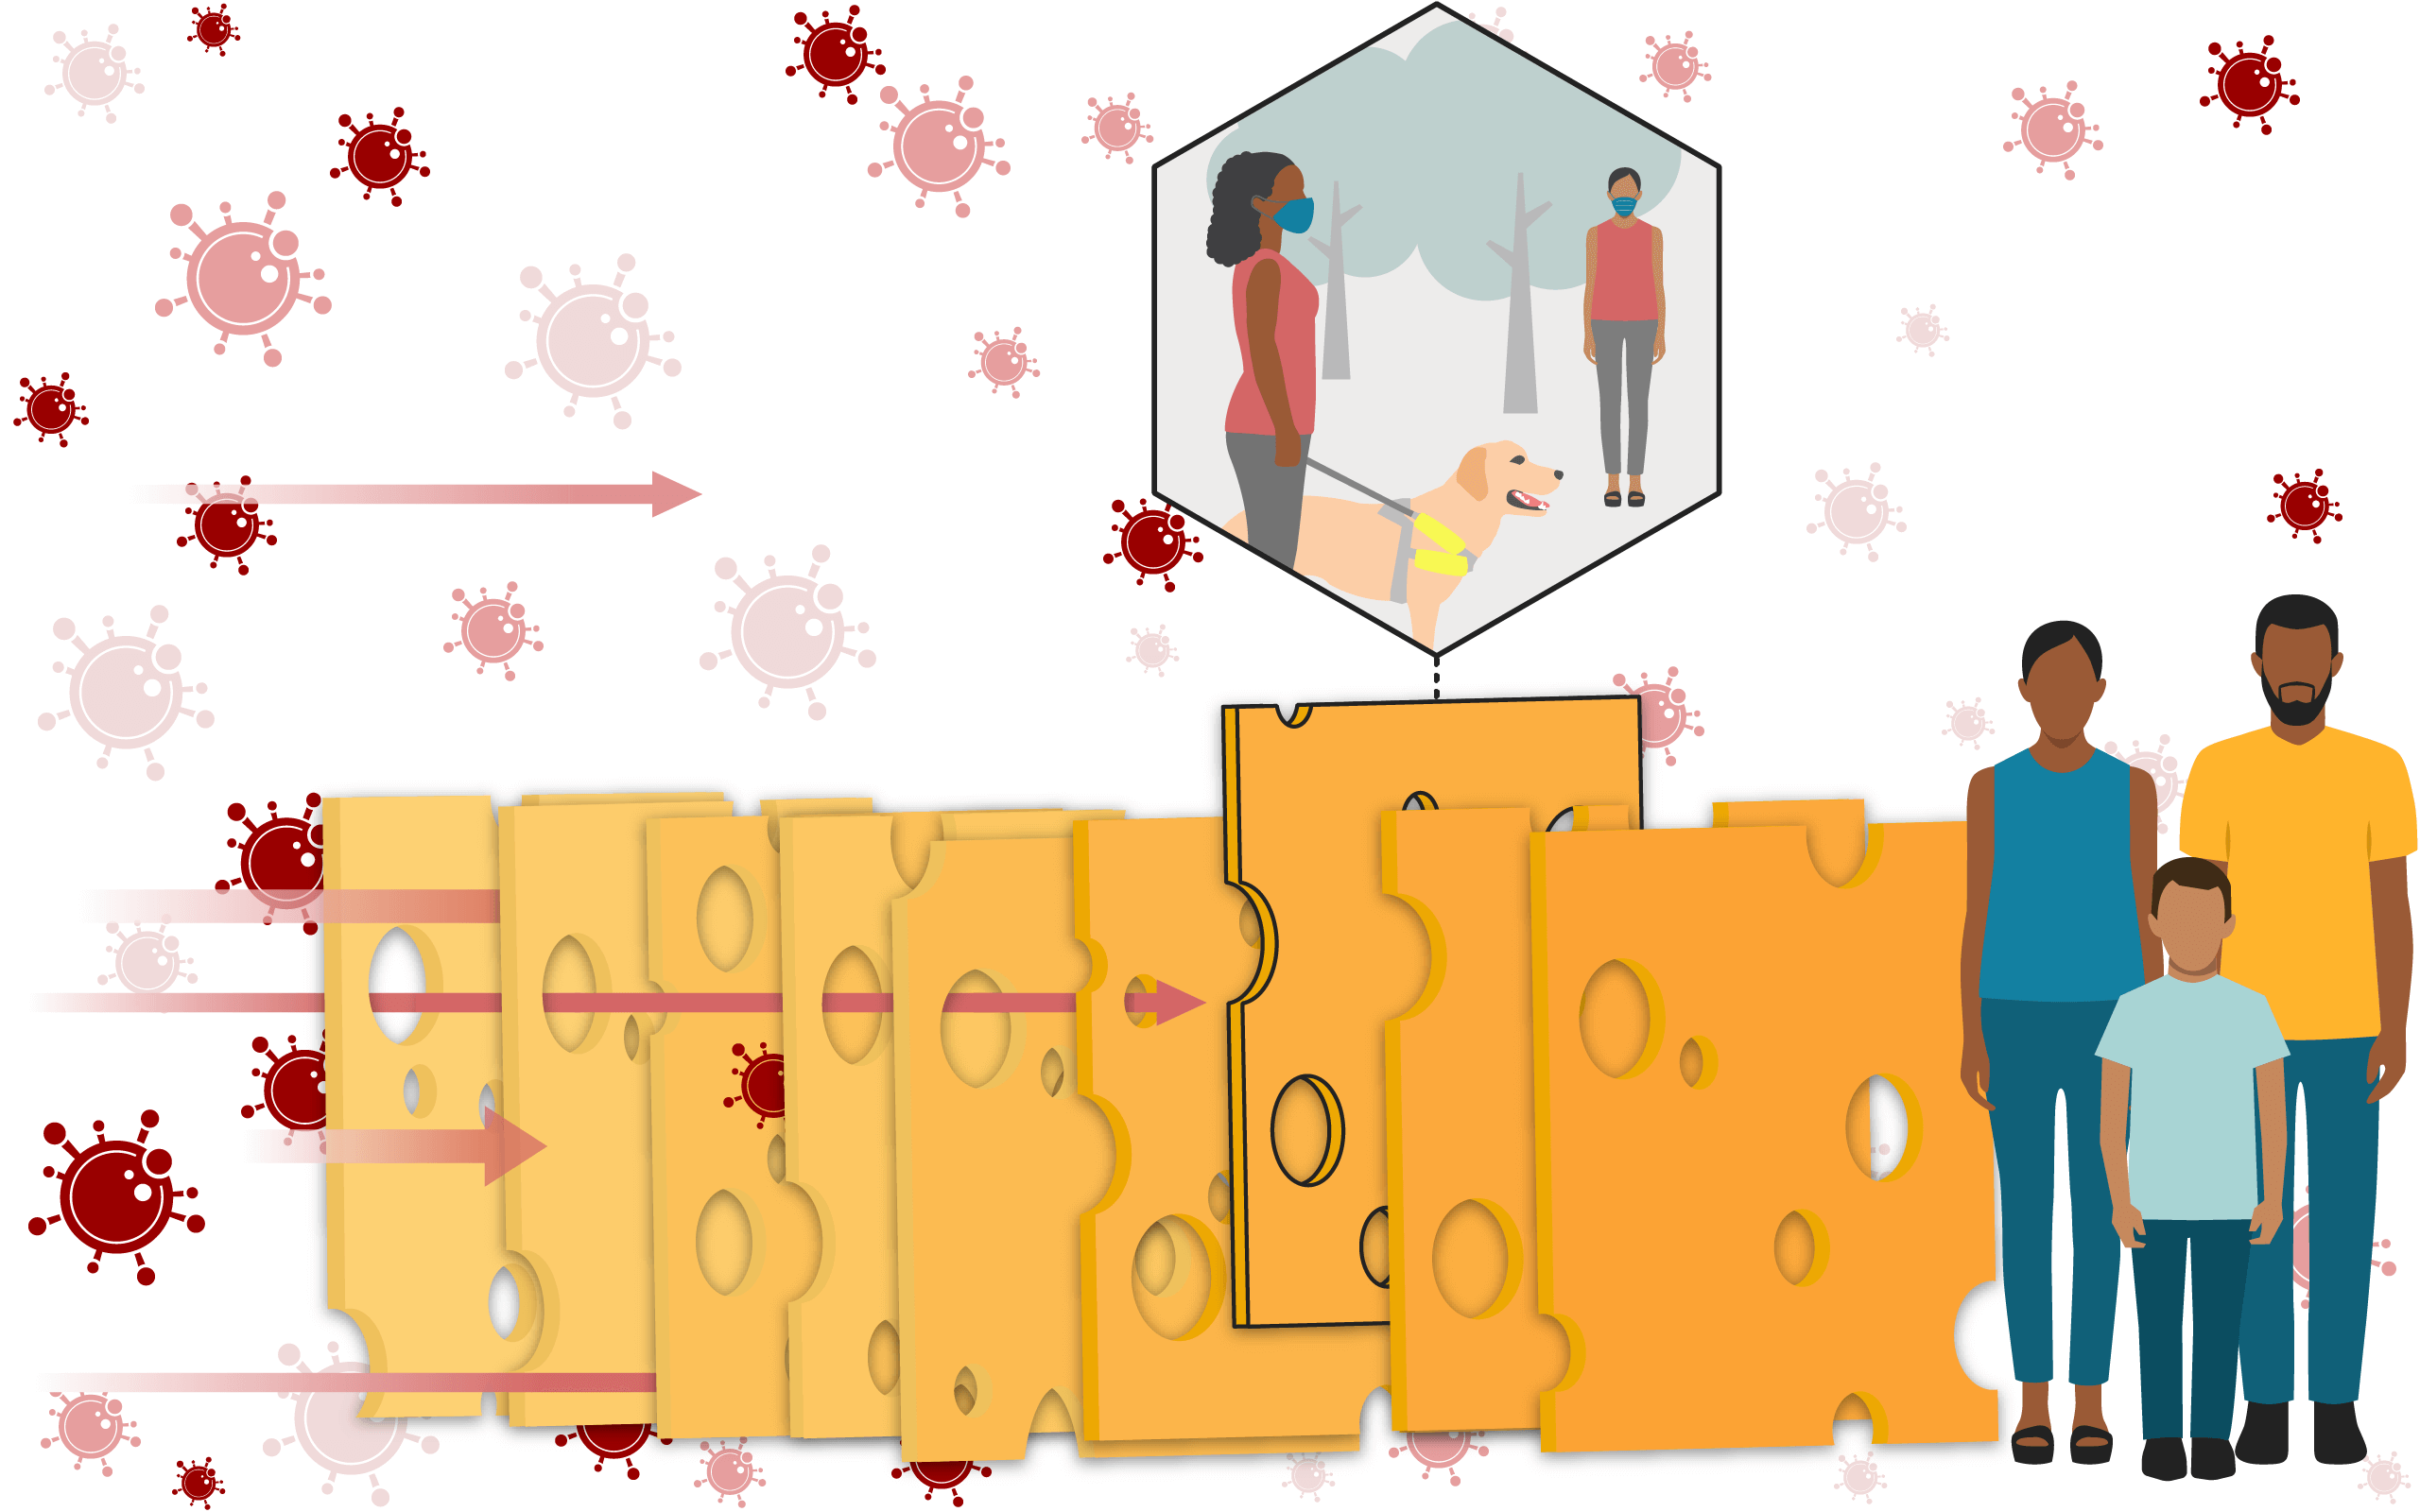 Illustration of a Swiss cheese, with a slice highlighted, representing socialising outdoors